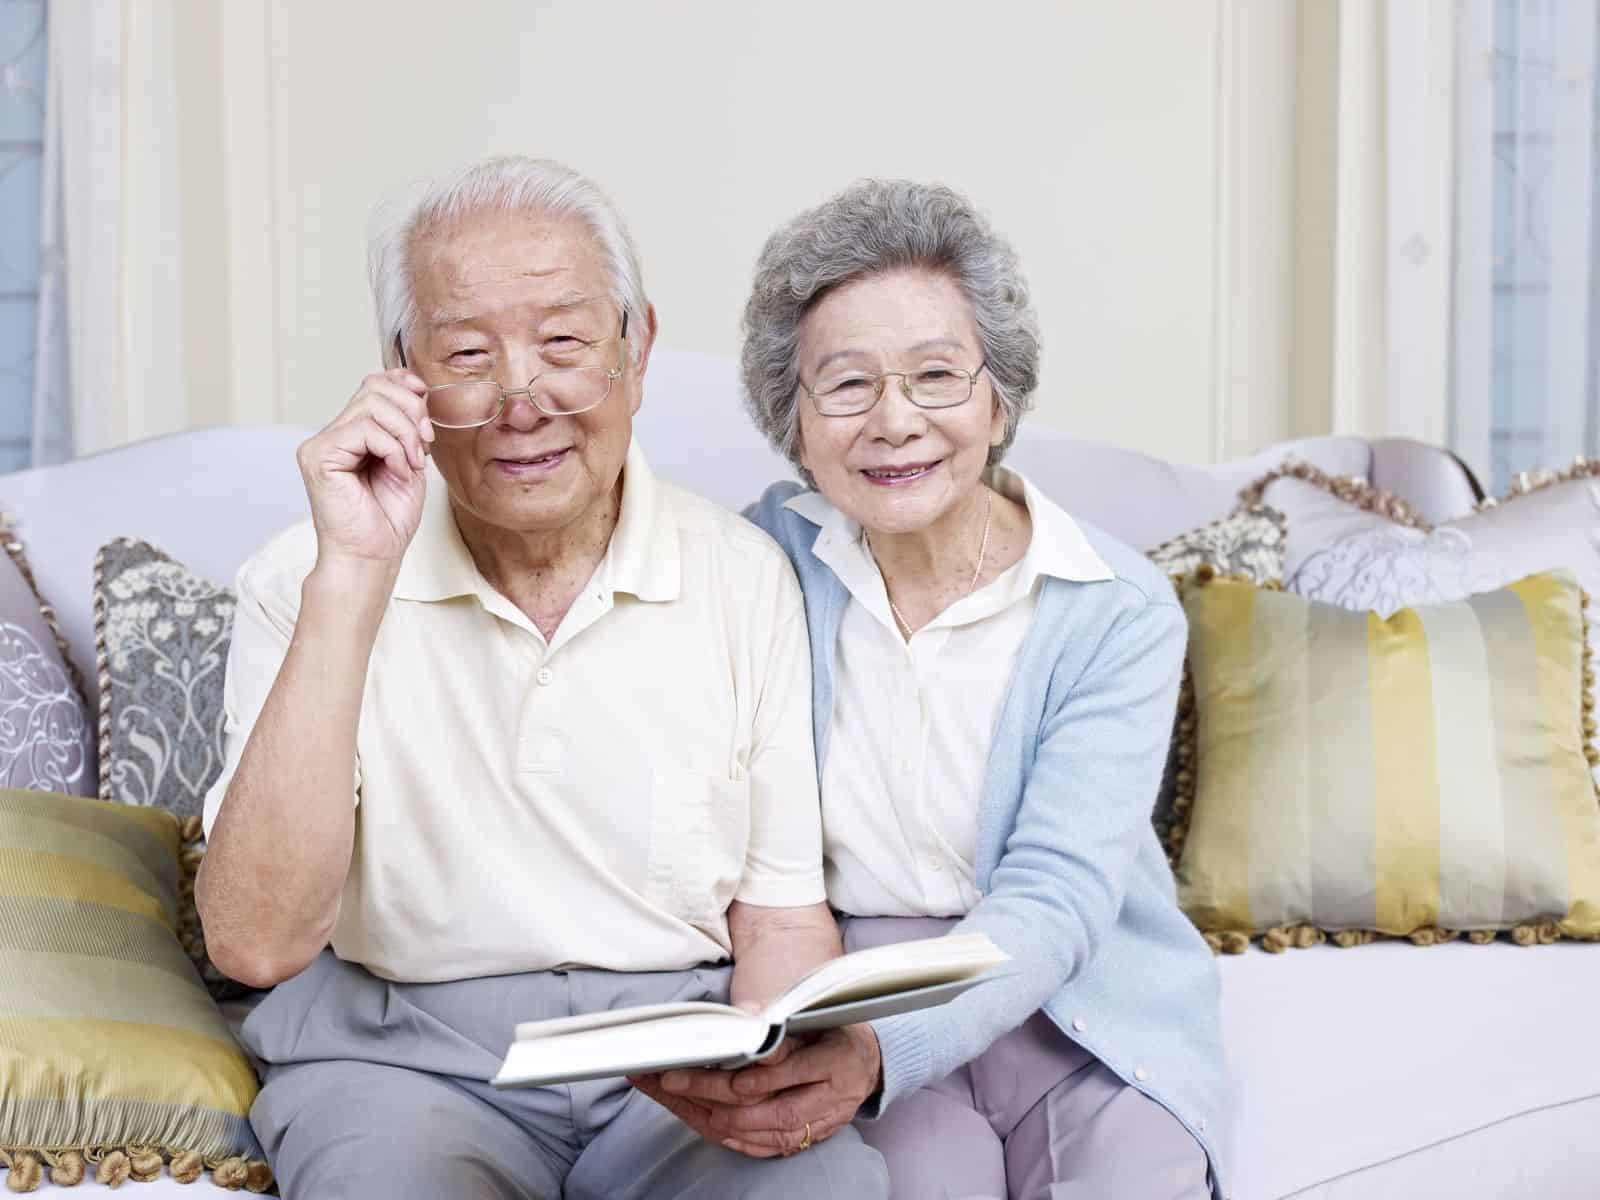 two elderly people reading a book and looking at camera